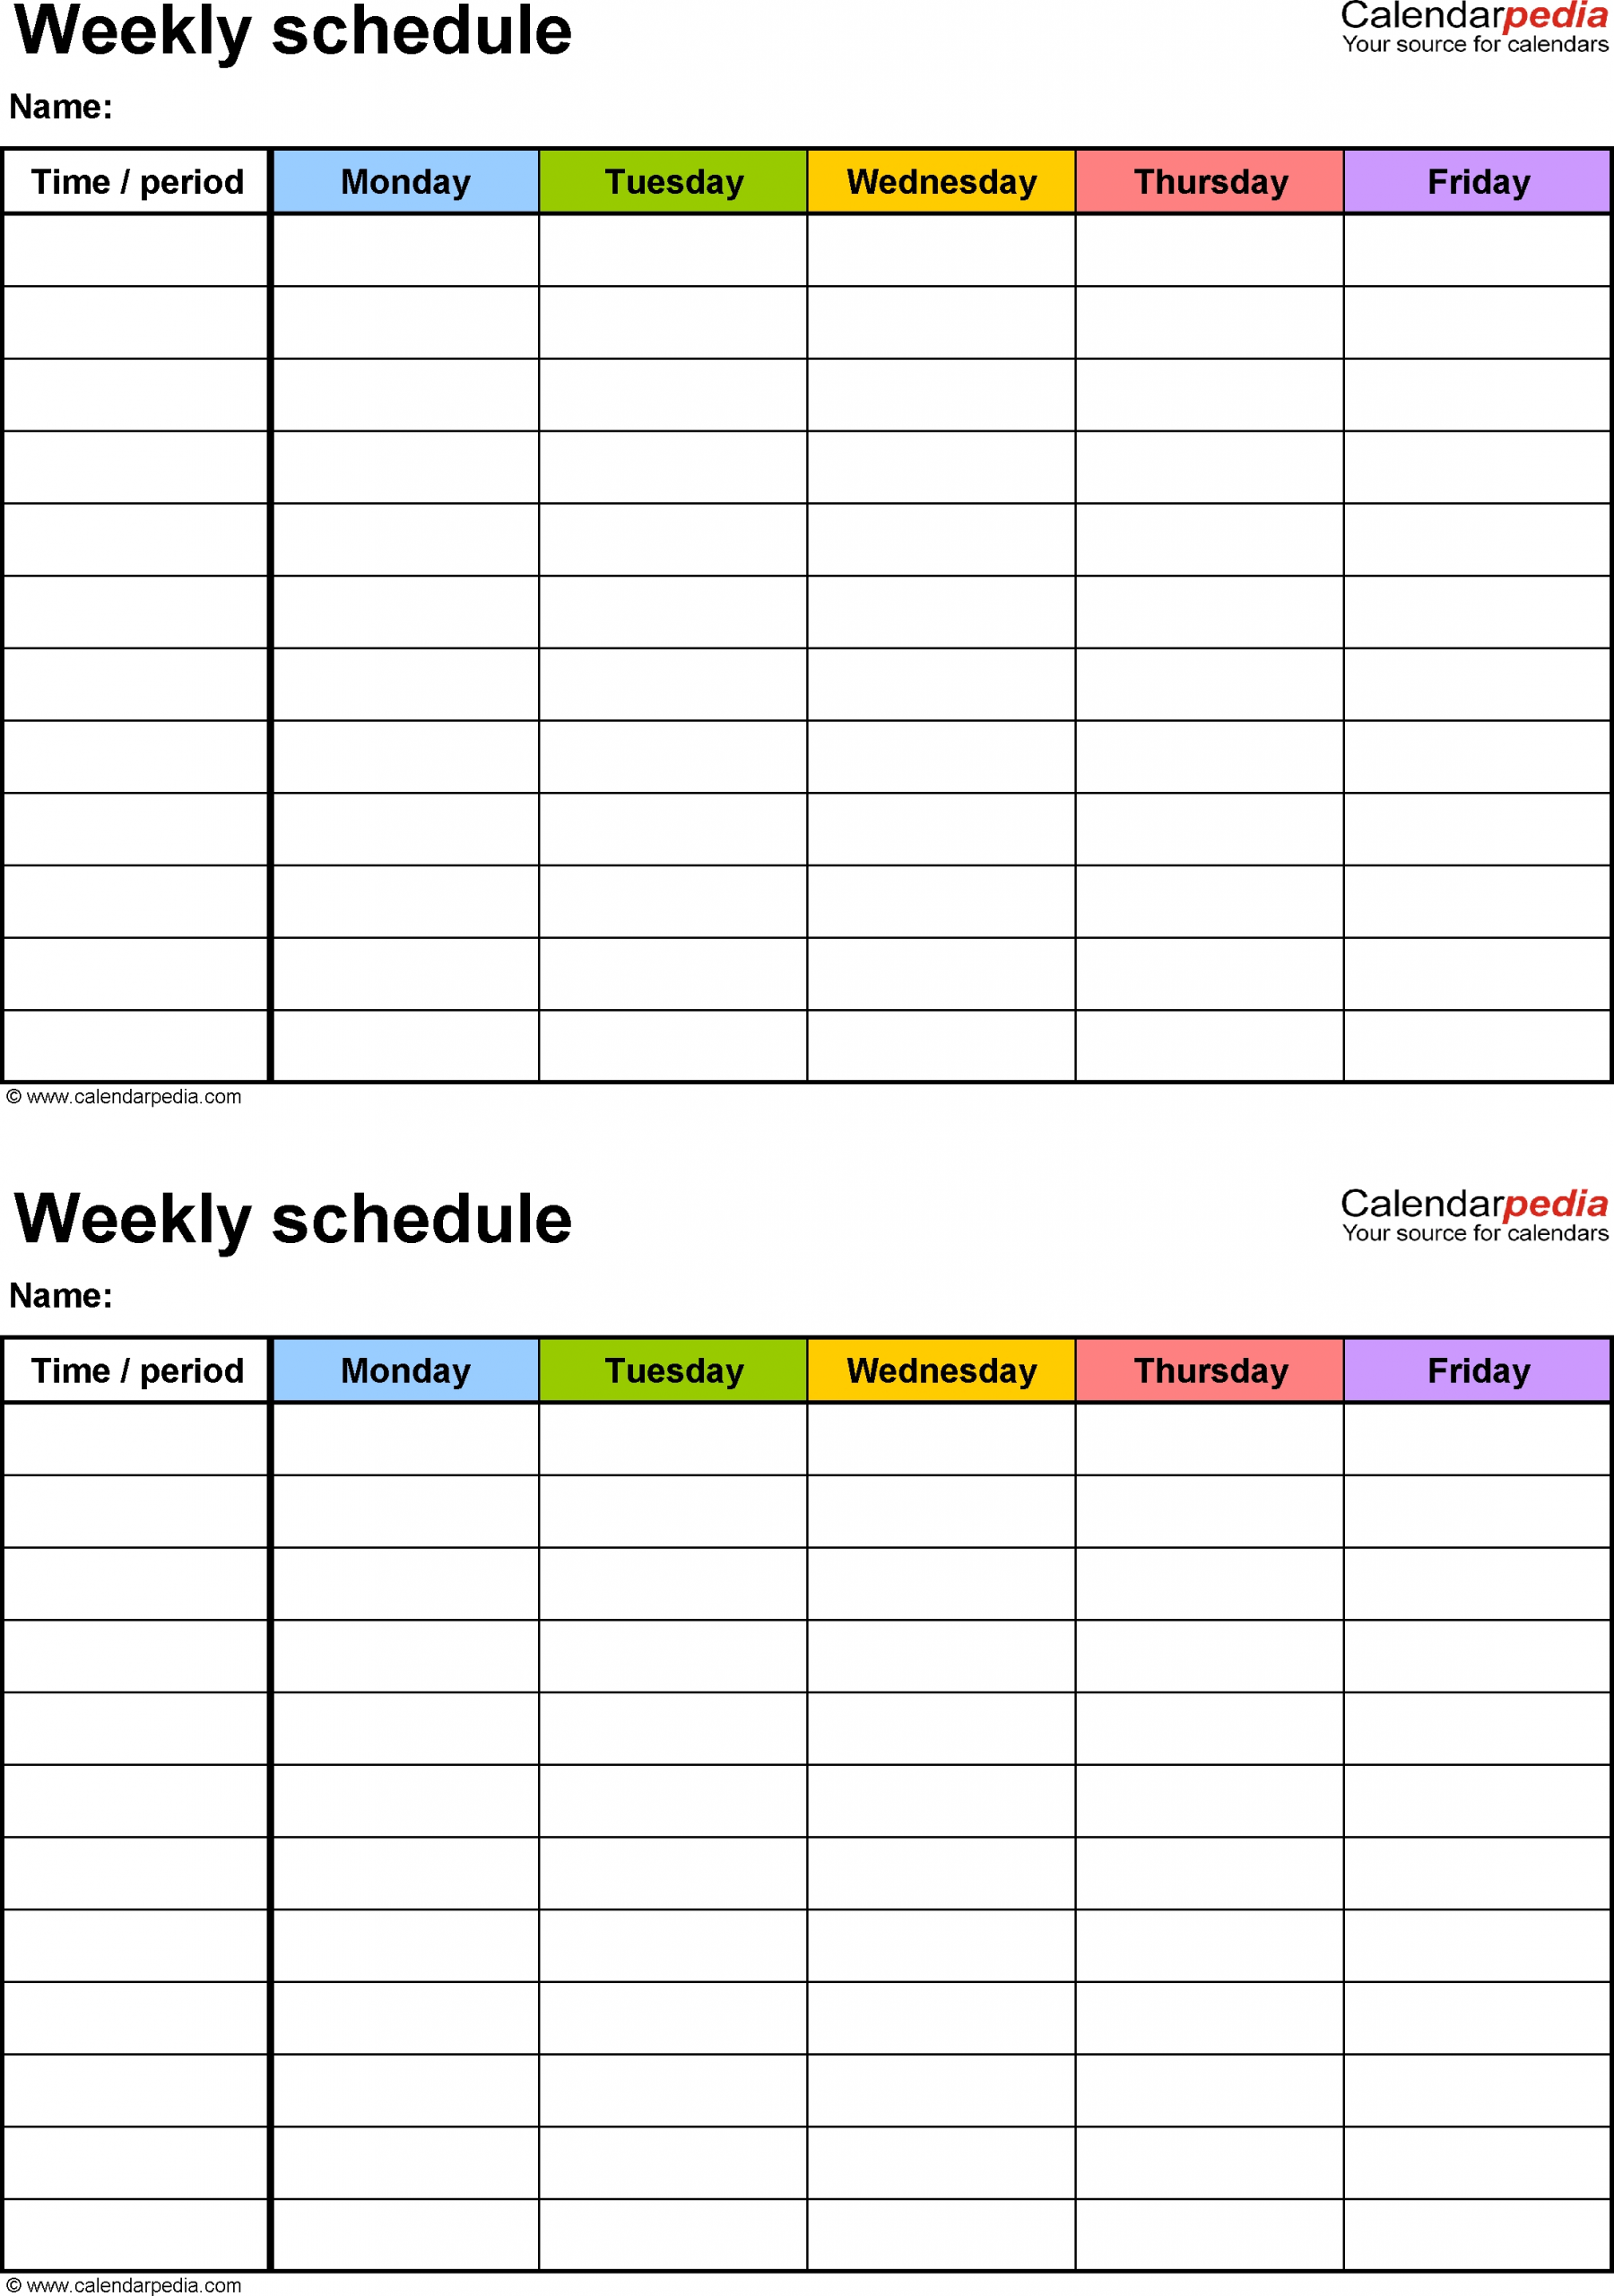 Downloadable Monday Thru Friday Calendar Template Monday Thru Friday Printable Calendar